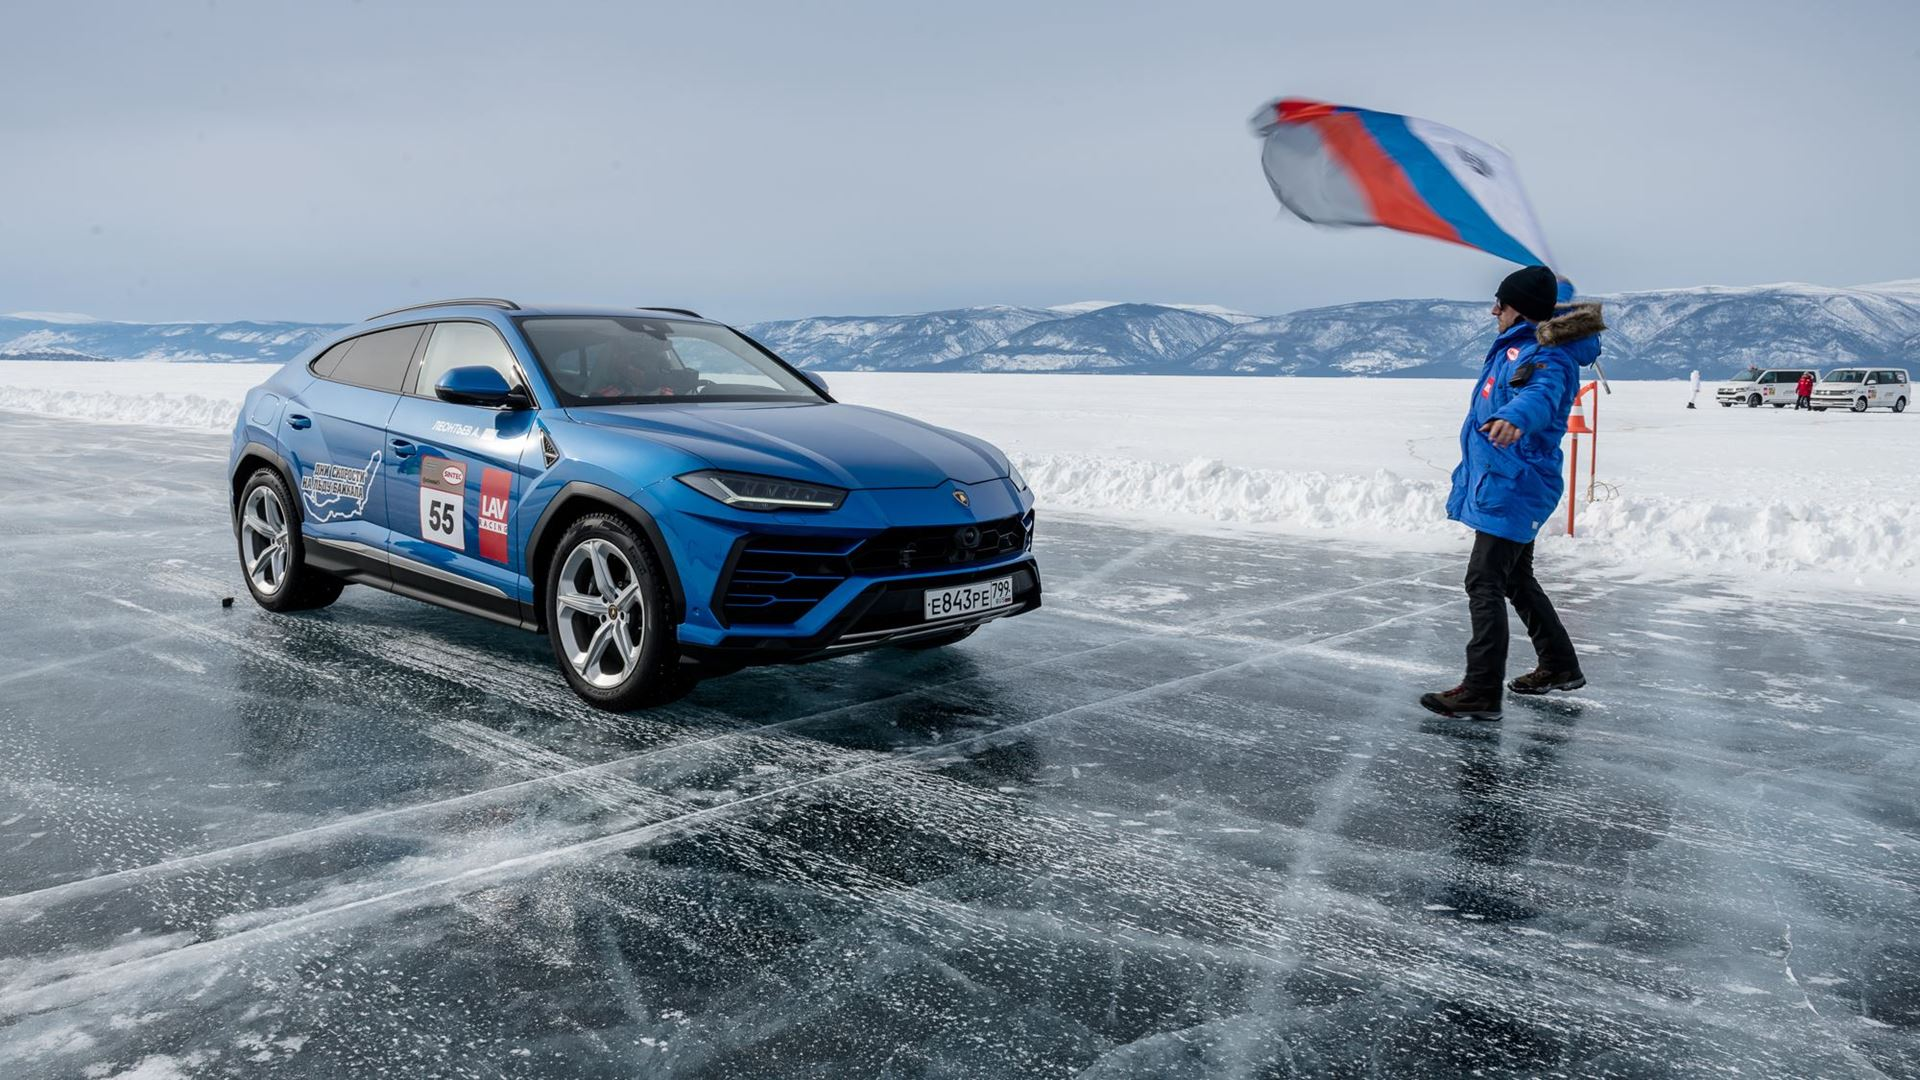 Lamborghini Urus sets high-speed record on the ice of Lake Baikal - Image 7